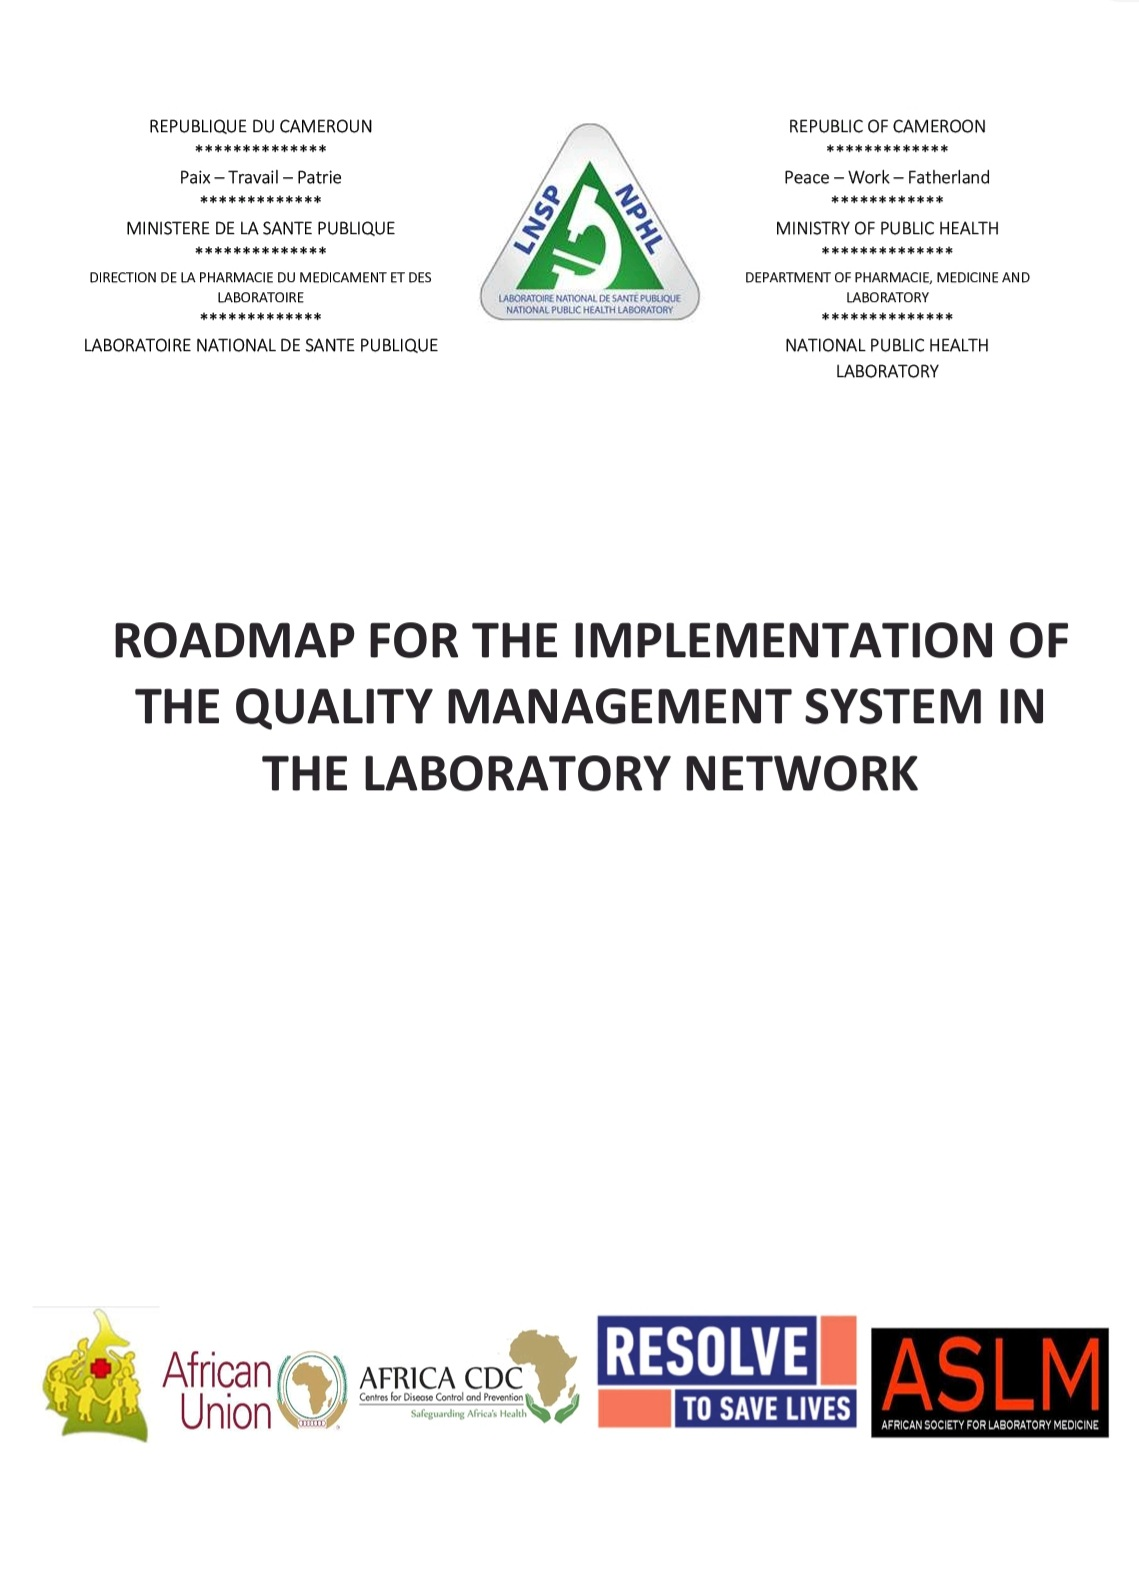 ROADMAP FOR THE IMPLEMENTATION OF THE QUALITY MANAGEMENT SYSTEM IN THE LABORATORY NETWORK